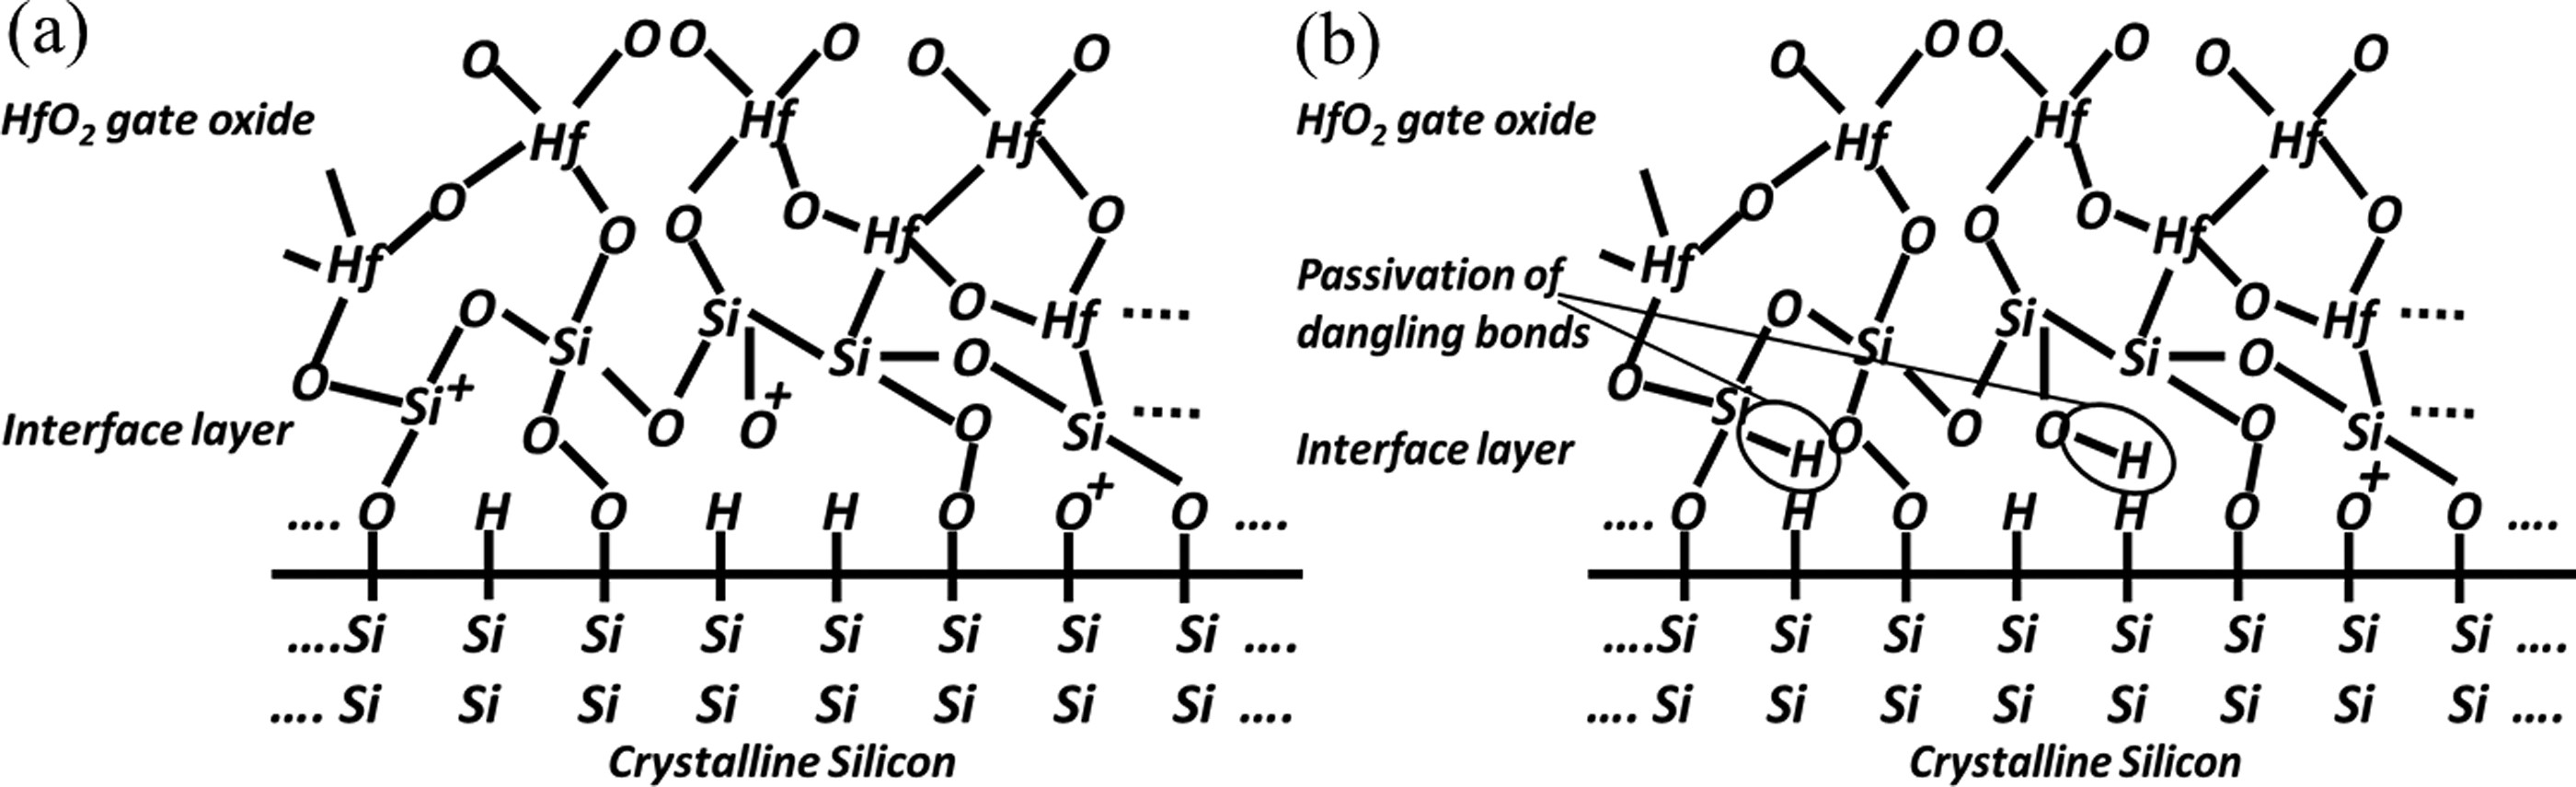 Engineering of silicon/HfO2 interface by variable energy proton